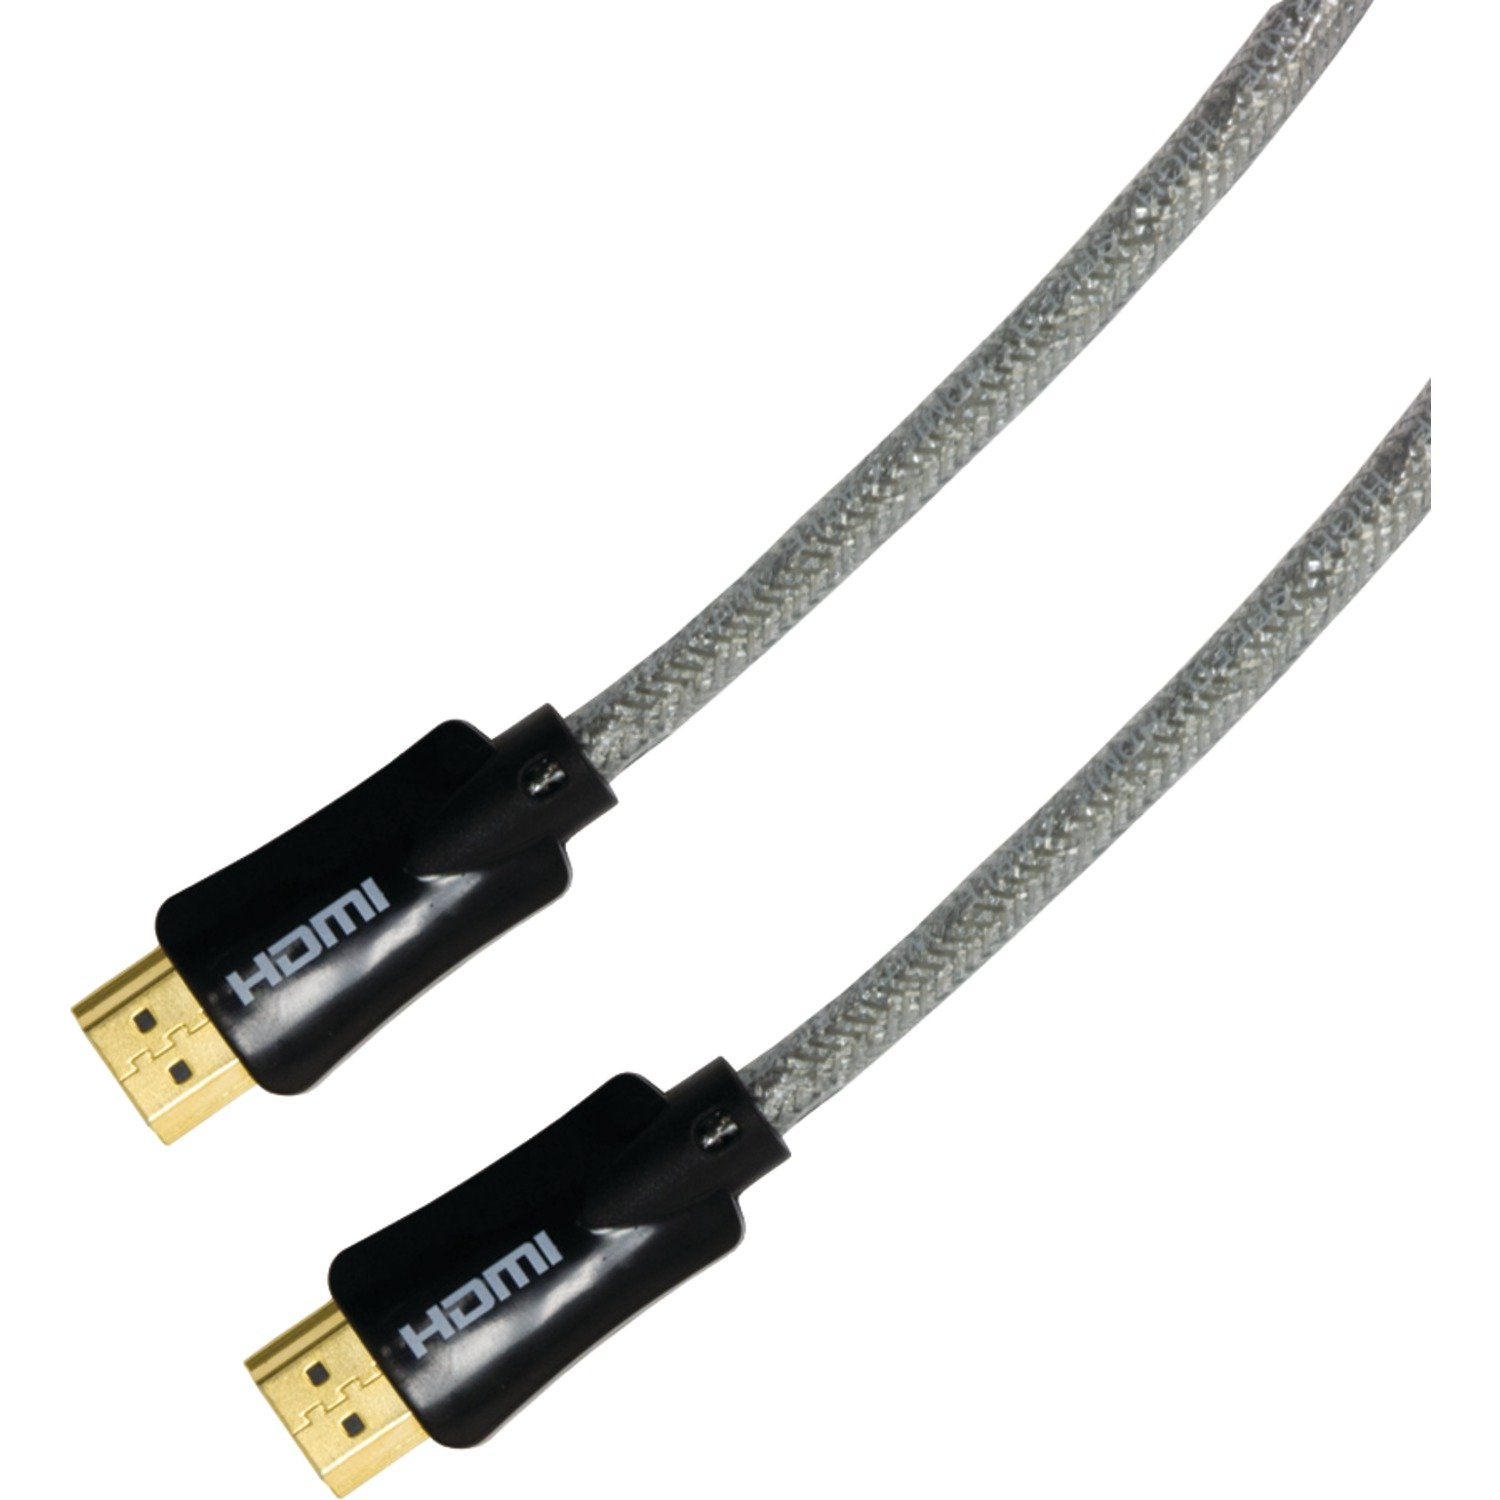 GE 24205 HDMI Cable with Ethernet, 50-Feet, Clear